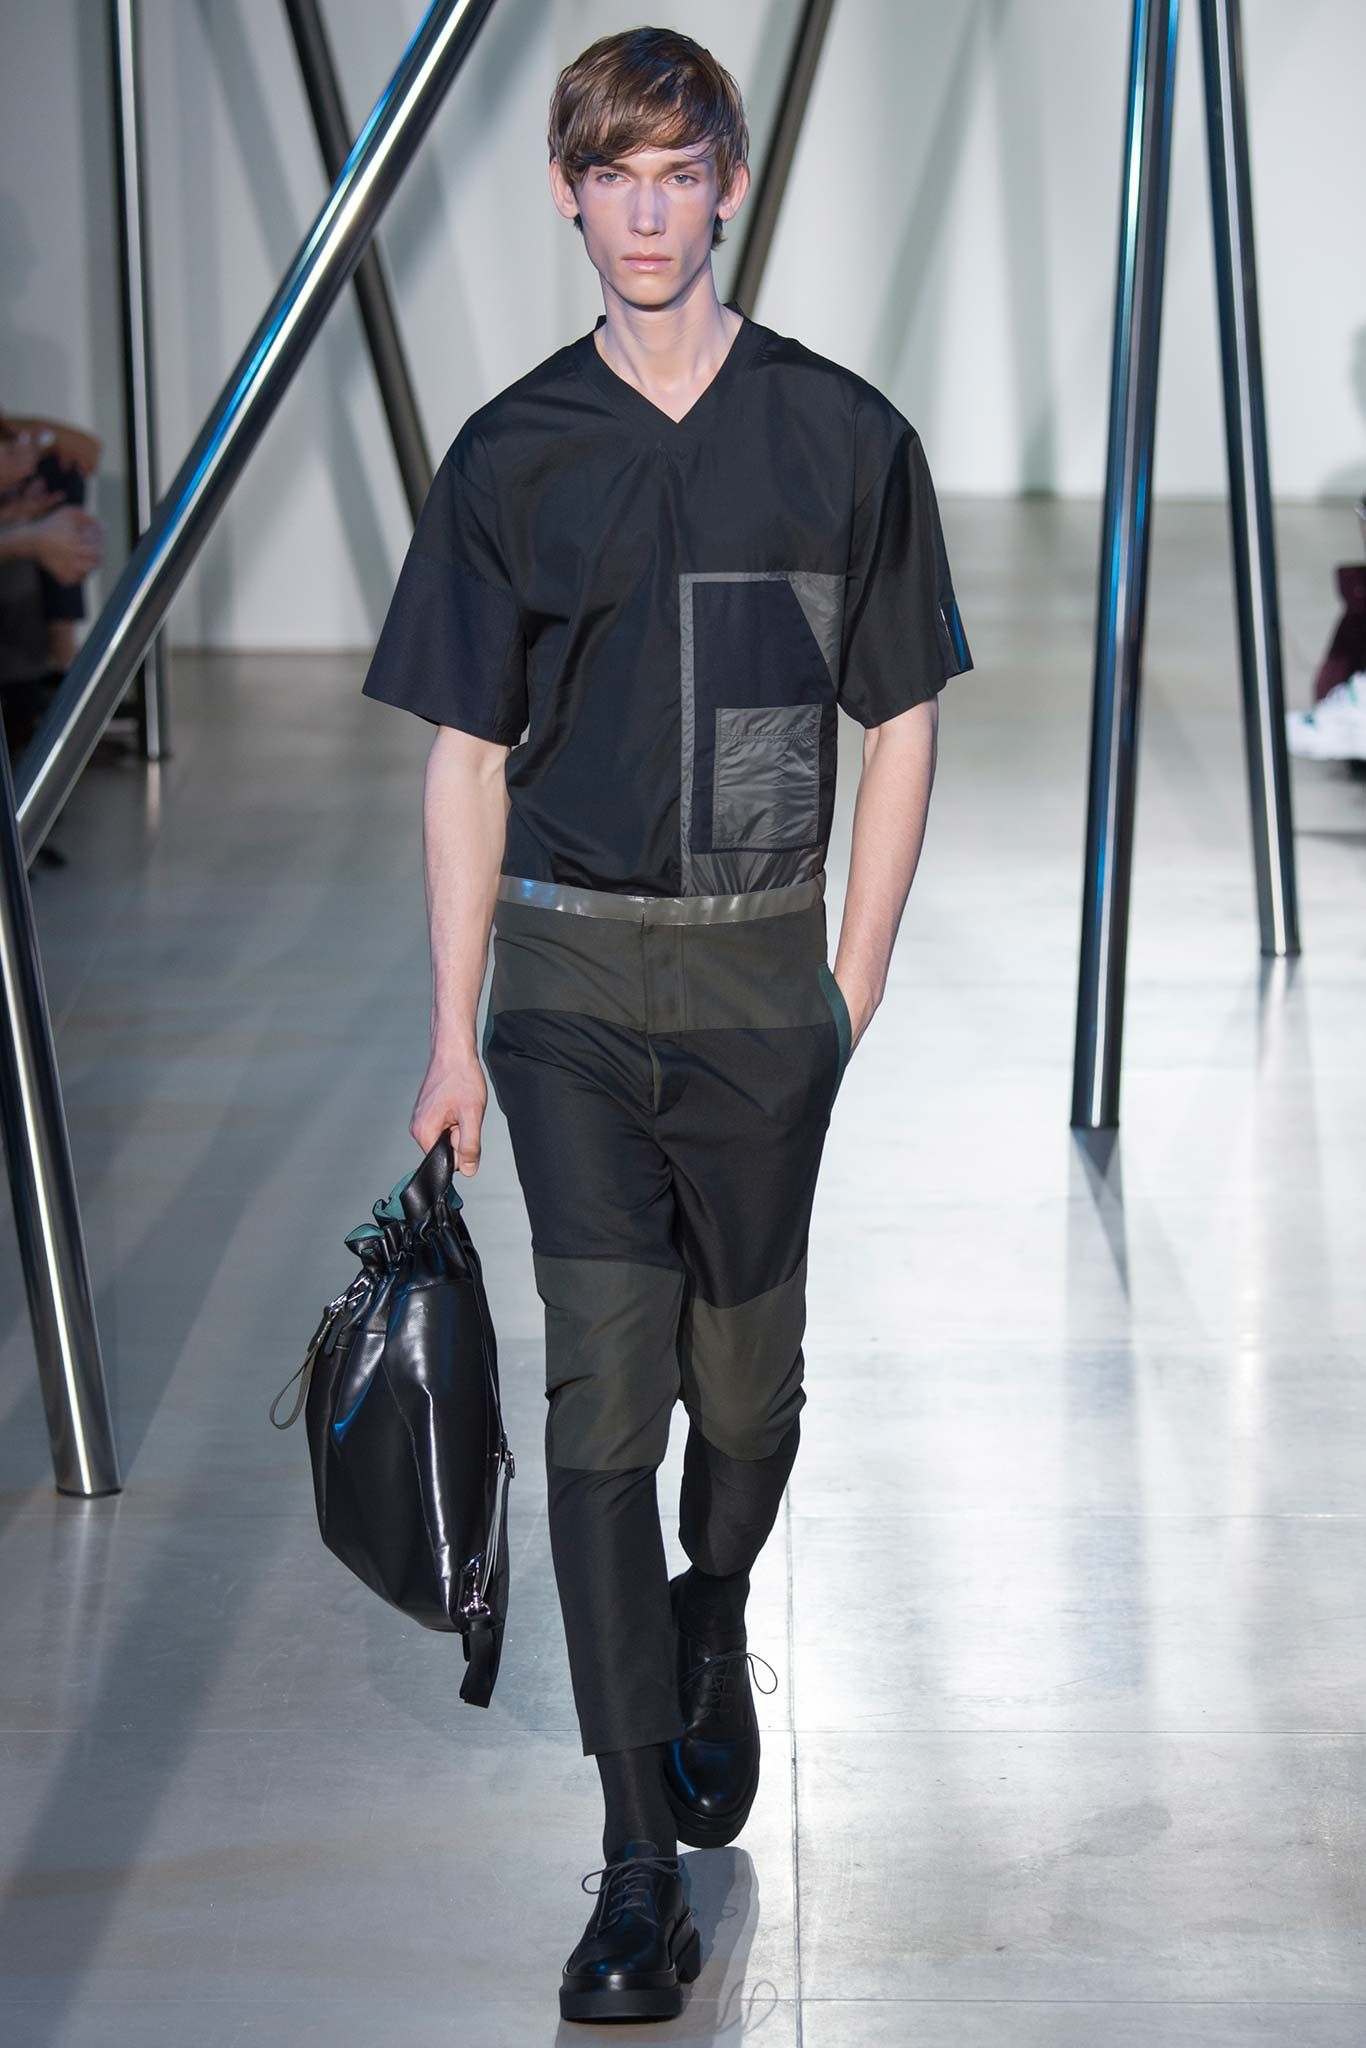 Jil Sander - Spring 2016 Menswear - Look 10 of 34?url=http://www.style.com/slideshows/fashion-shows/spring-2016-menswear/jil-sander/collection/10